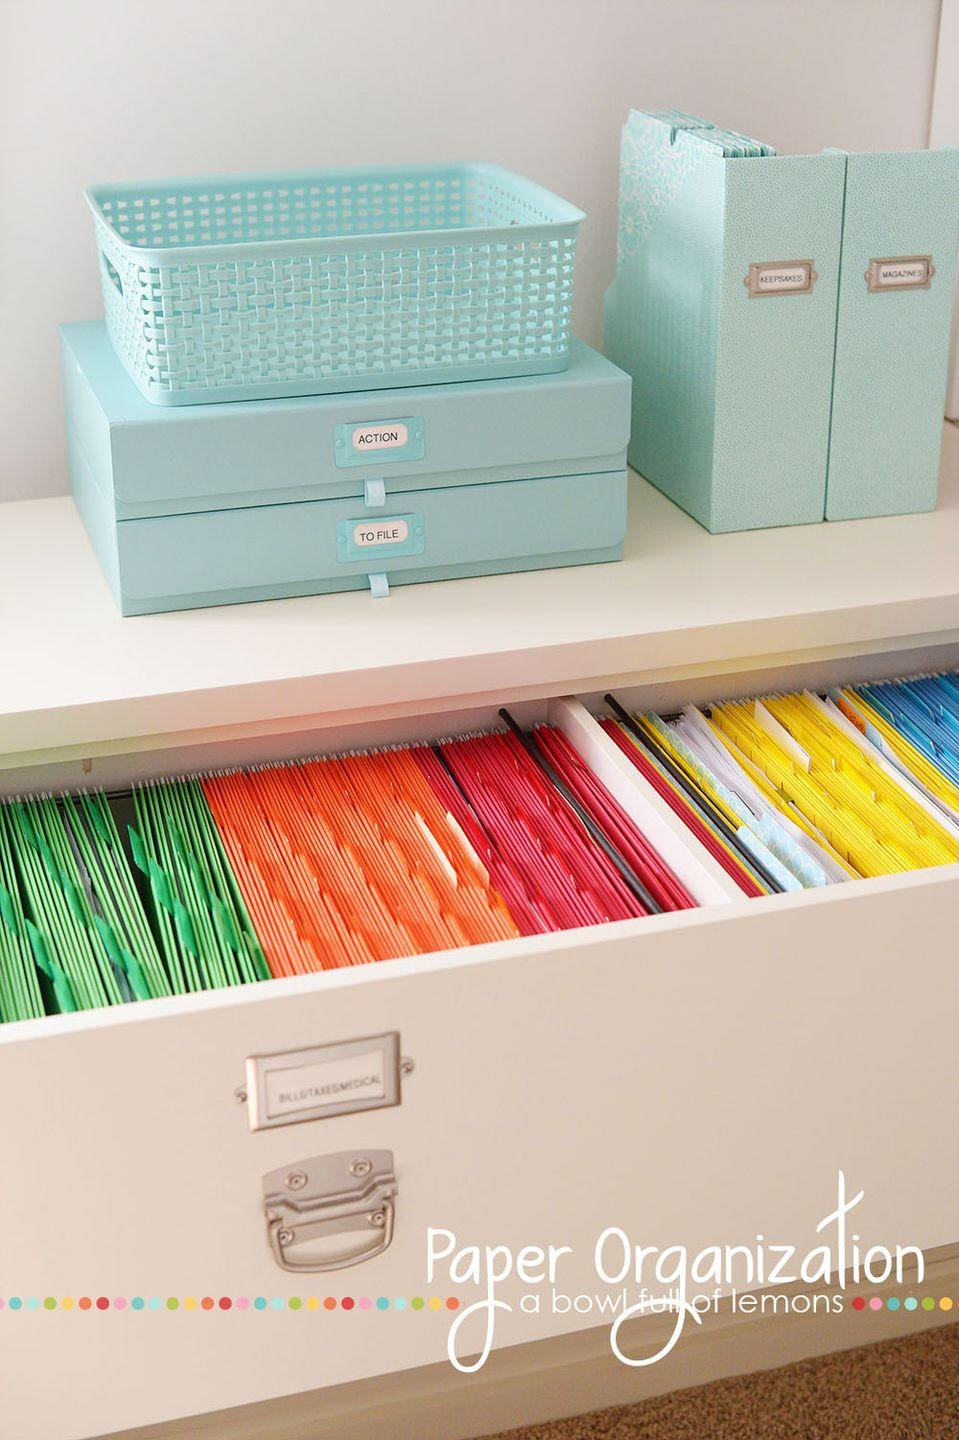 """<p>Manilla file folders have nothing on this pristine color-coded set. Finding important papers barely requires reading labels — just a glance toward the right color to find exactly what you need fast. </p><p><em><em><a href=""""http://www.abowlfulloflemons.net/2014/02/paper-organization.html"""" rel=""""nofollow noopener"""" target=""""_blank"""" data-ylk=""""slk:Get the tutorial at A Bowl Full of Lemons »"""" class=""""link rapid-noclick-resp"""">Get the tutorial at A Bowl Full of Lemons »</a></em></em></p>"""